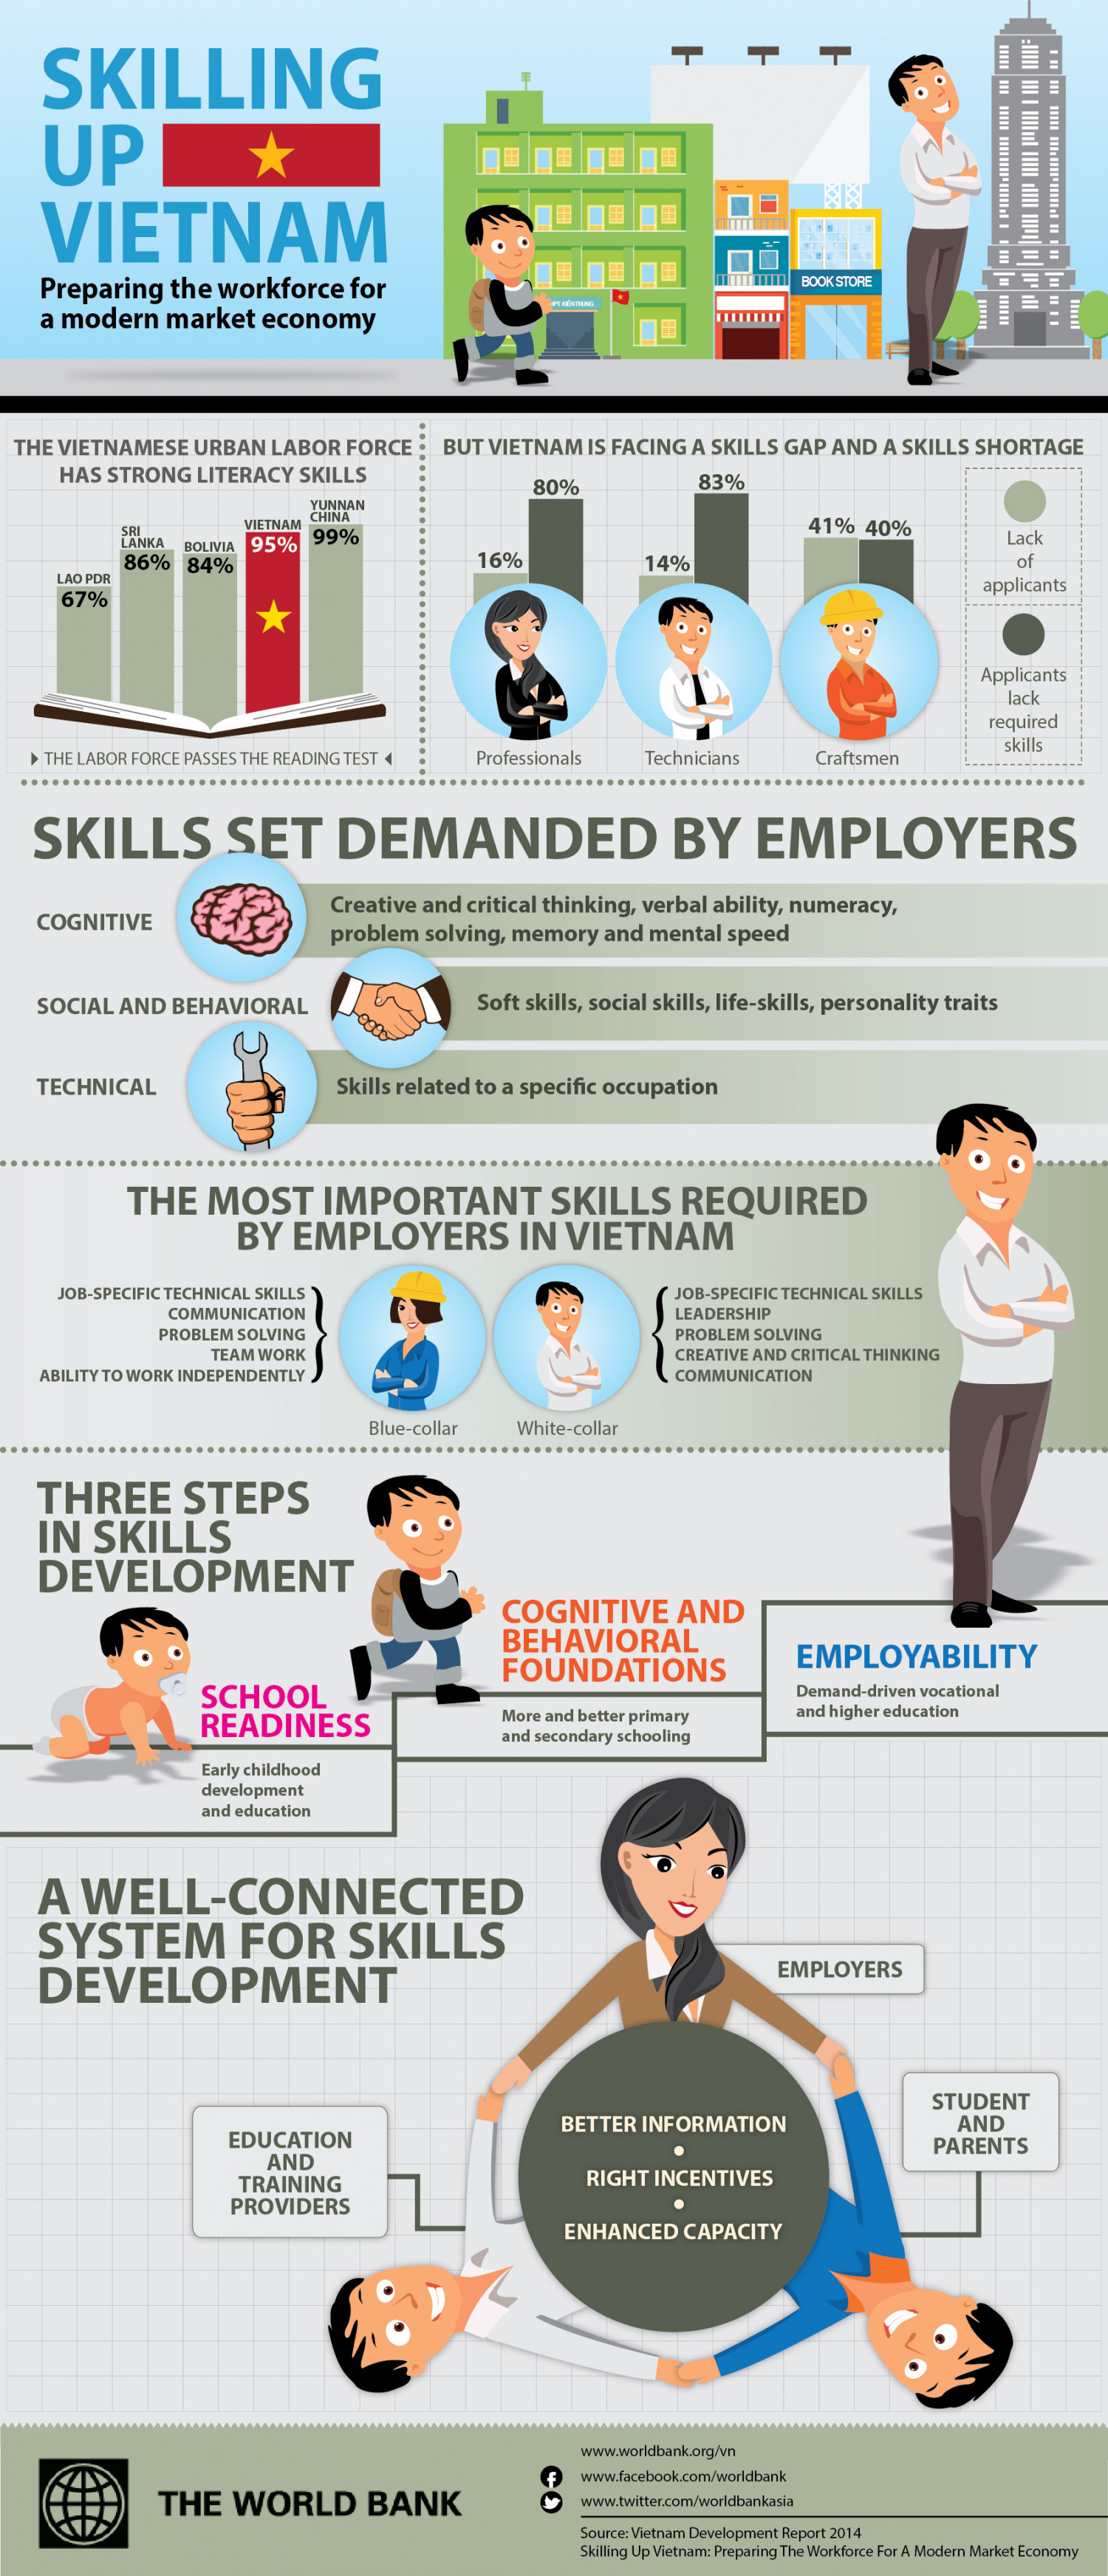 Skilling Up Vietnam for A Modern Market Economy Infographic